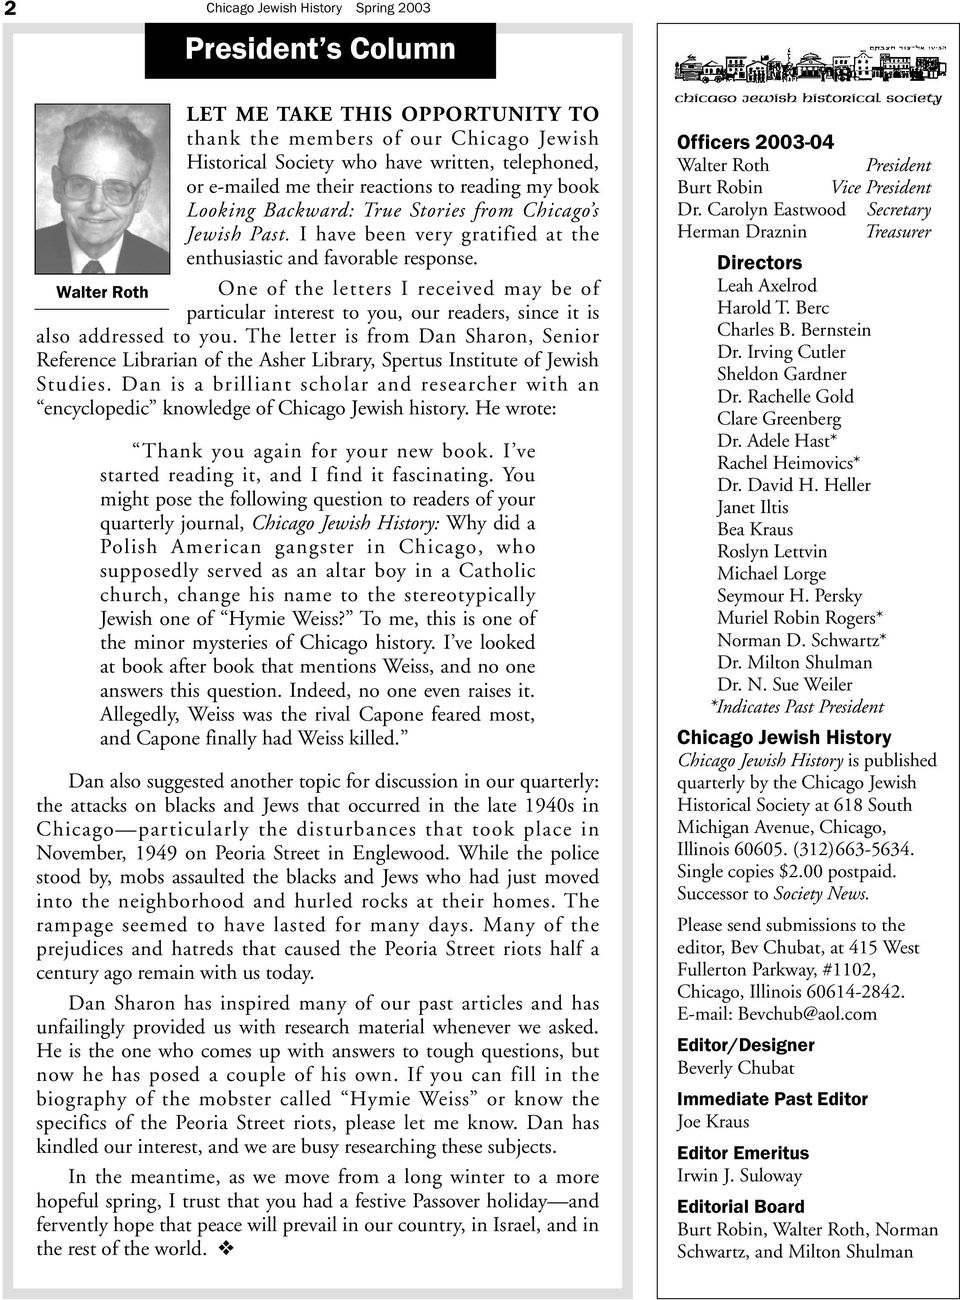 Walter Roth One of the letters I received may be of particular interest to you, our readers, since it is also addressed to you.